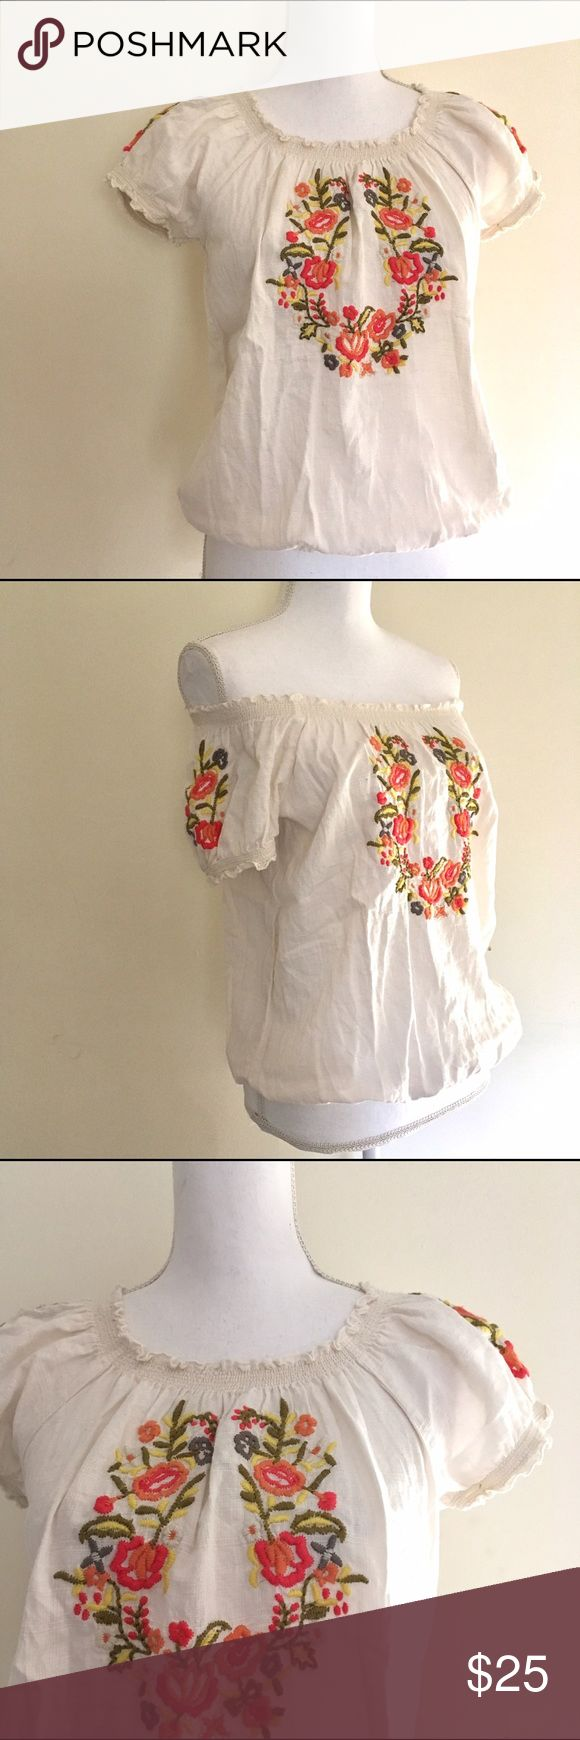 """Style & Co Floral Embroidered Boho Blouse Beautiful Orange and yellow flowers Embroidered onto white/Cream 100% cotton peasant blouse. Stretchy smocked neckline and hemline. In excellent pre-owned condition. Approx. Measurements: 16.5"""" armpit to armpit, 21.5"""" long.      🎀Search my closet for your size to: 🎀BUNDLE and SAVE! 🎀NO TRADES NO HOLDS 🎀Thank you for stopping by!❤️ Style & Co Tops Blouses"""